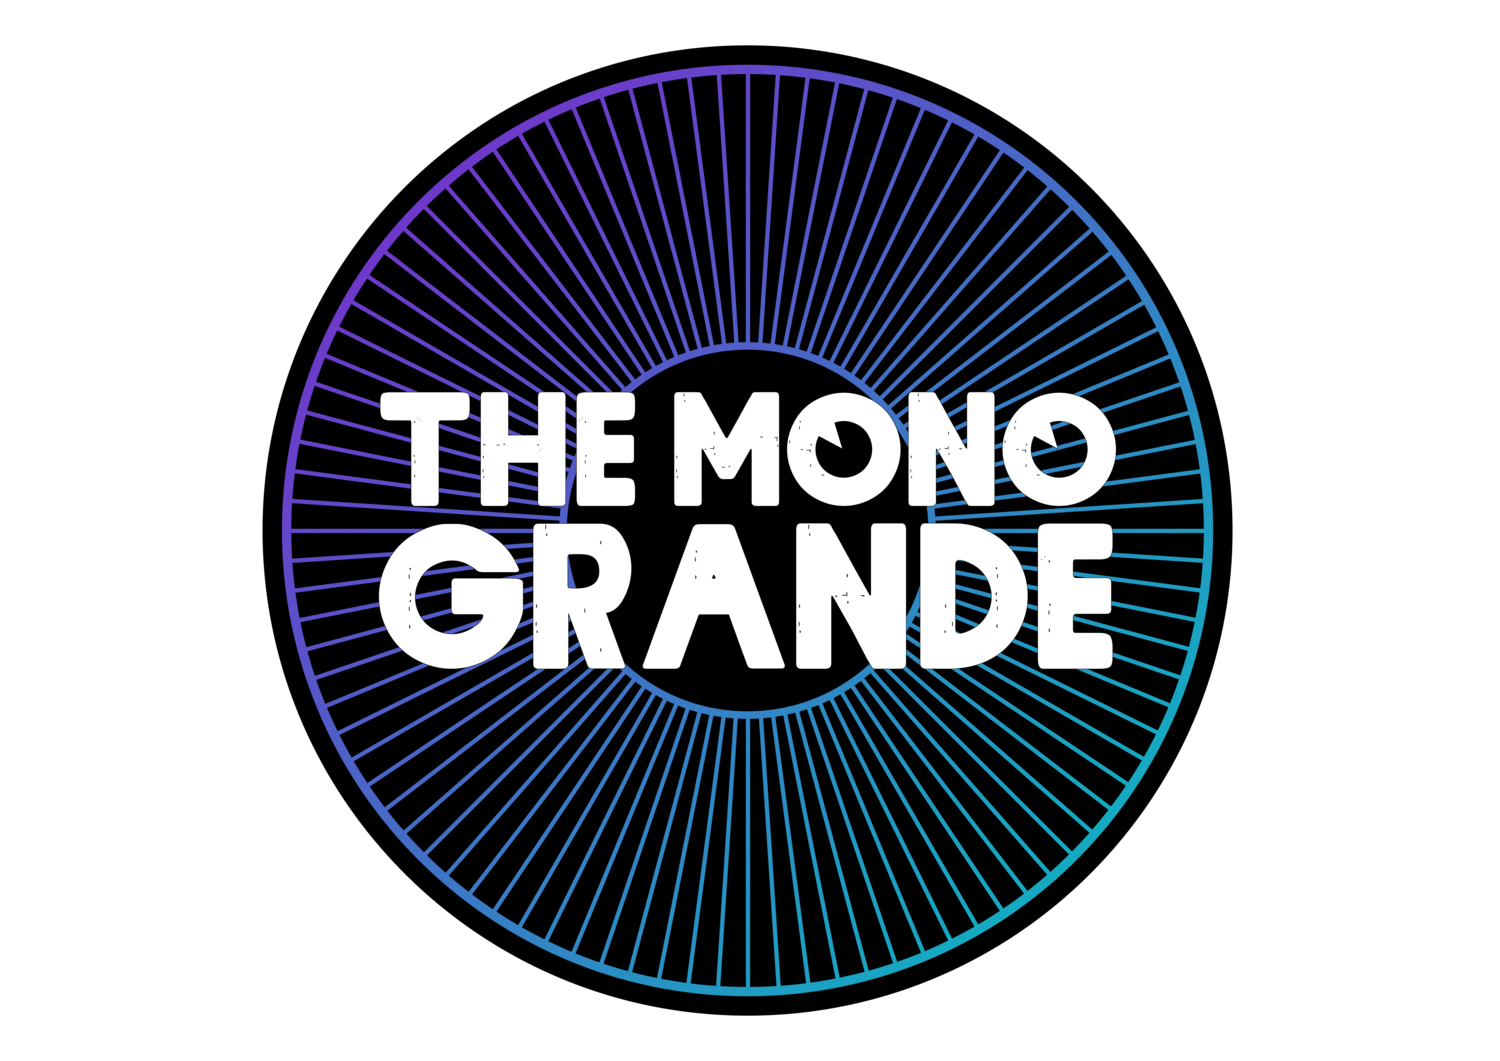 The Mono Grande || London Film Production Company